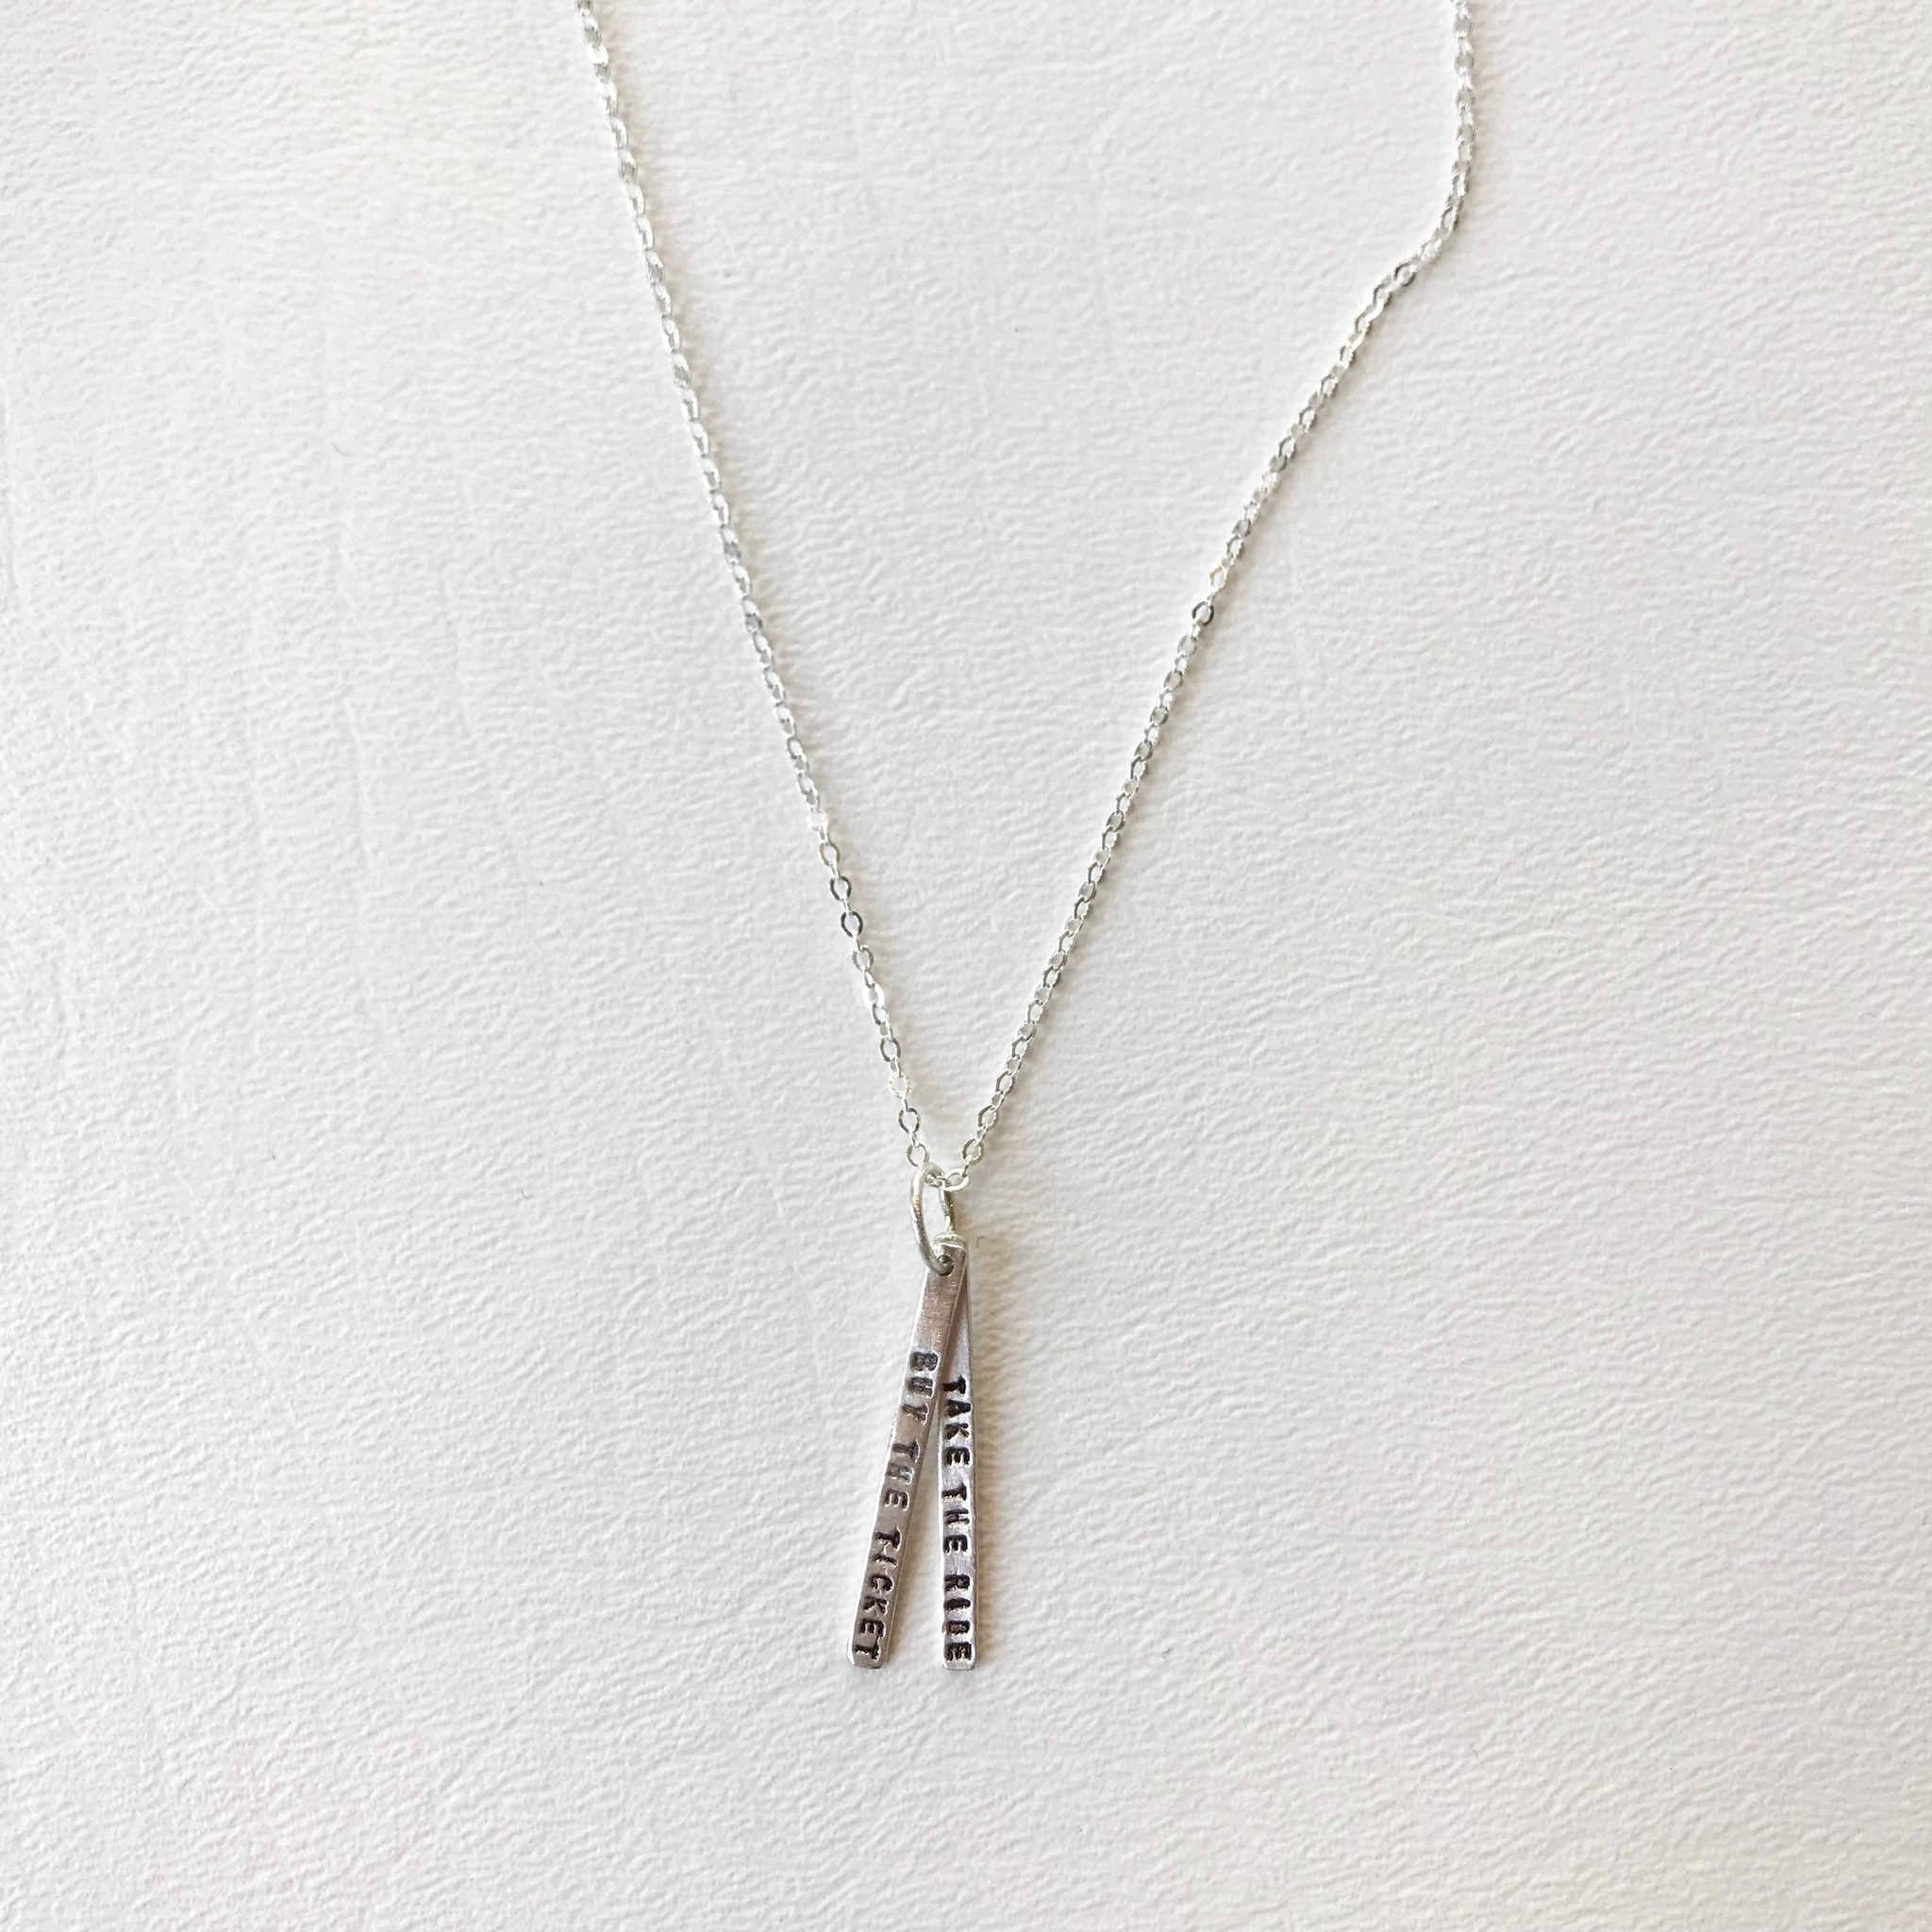 buy the ticket take the ride necklace